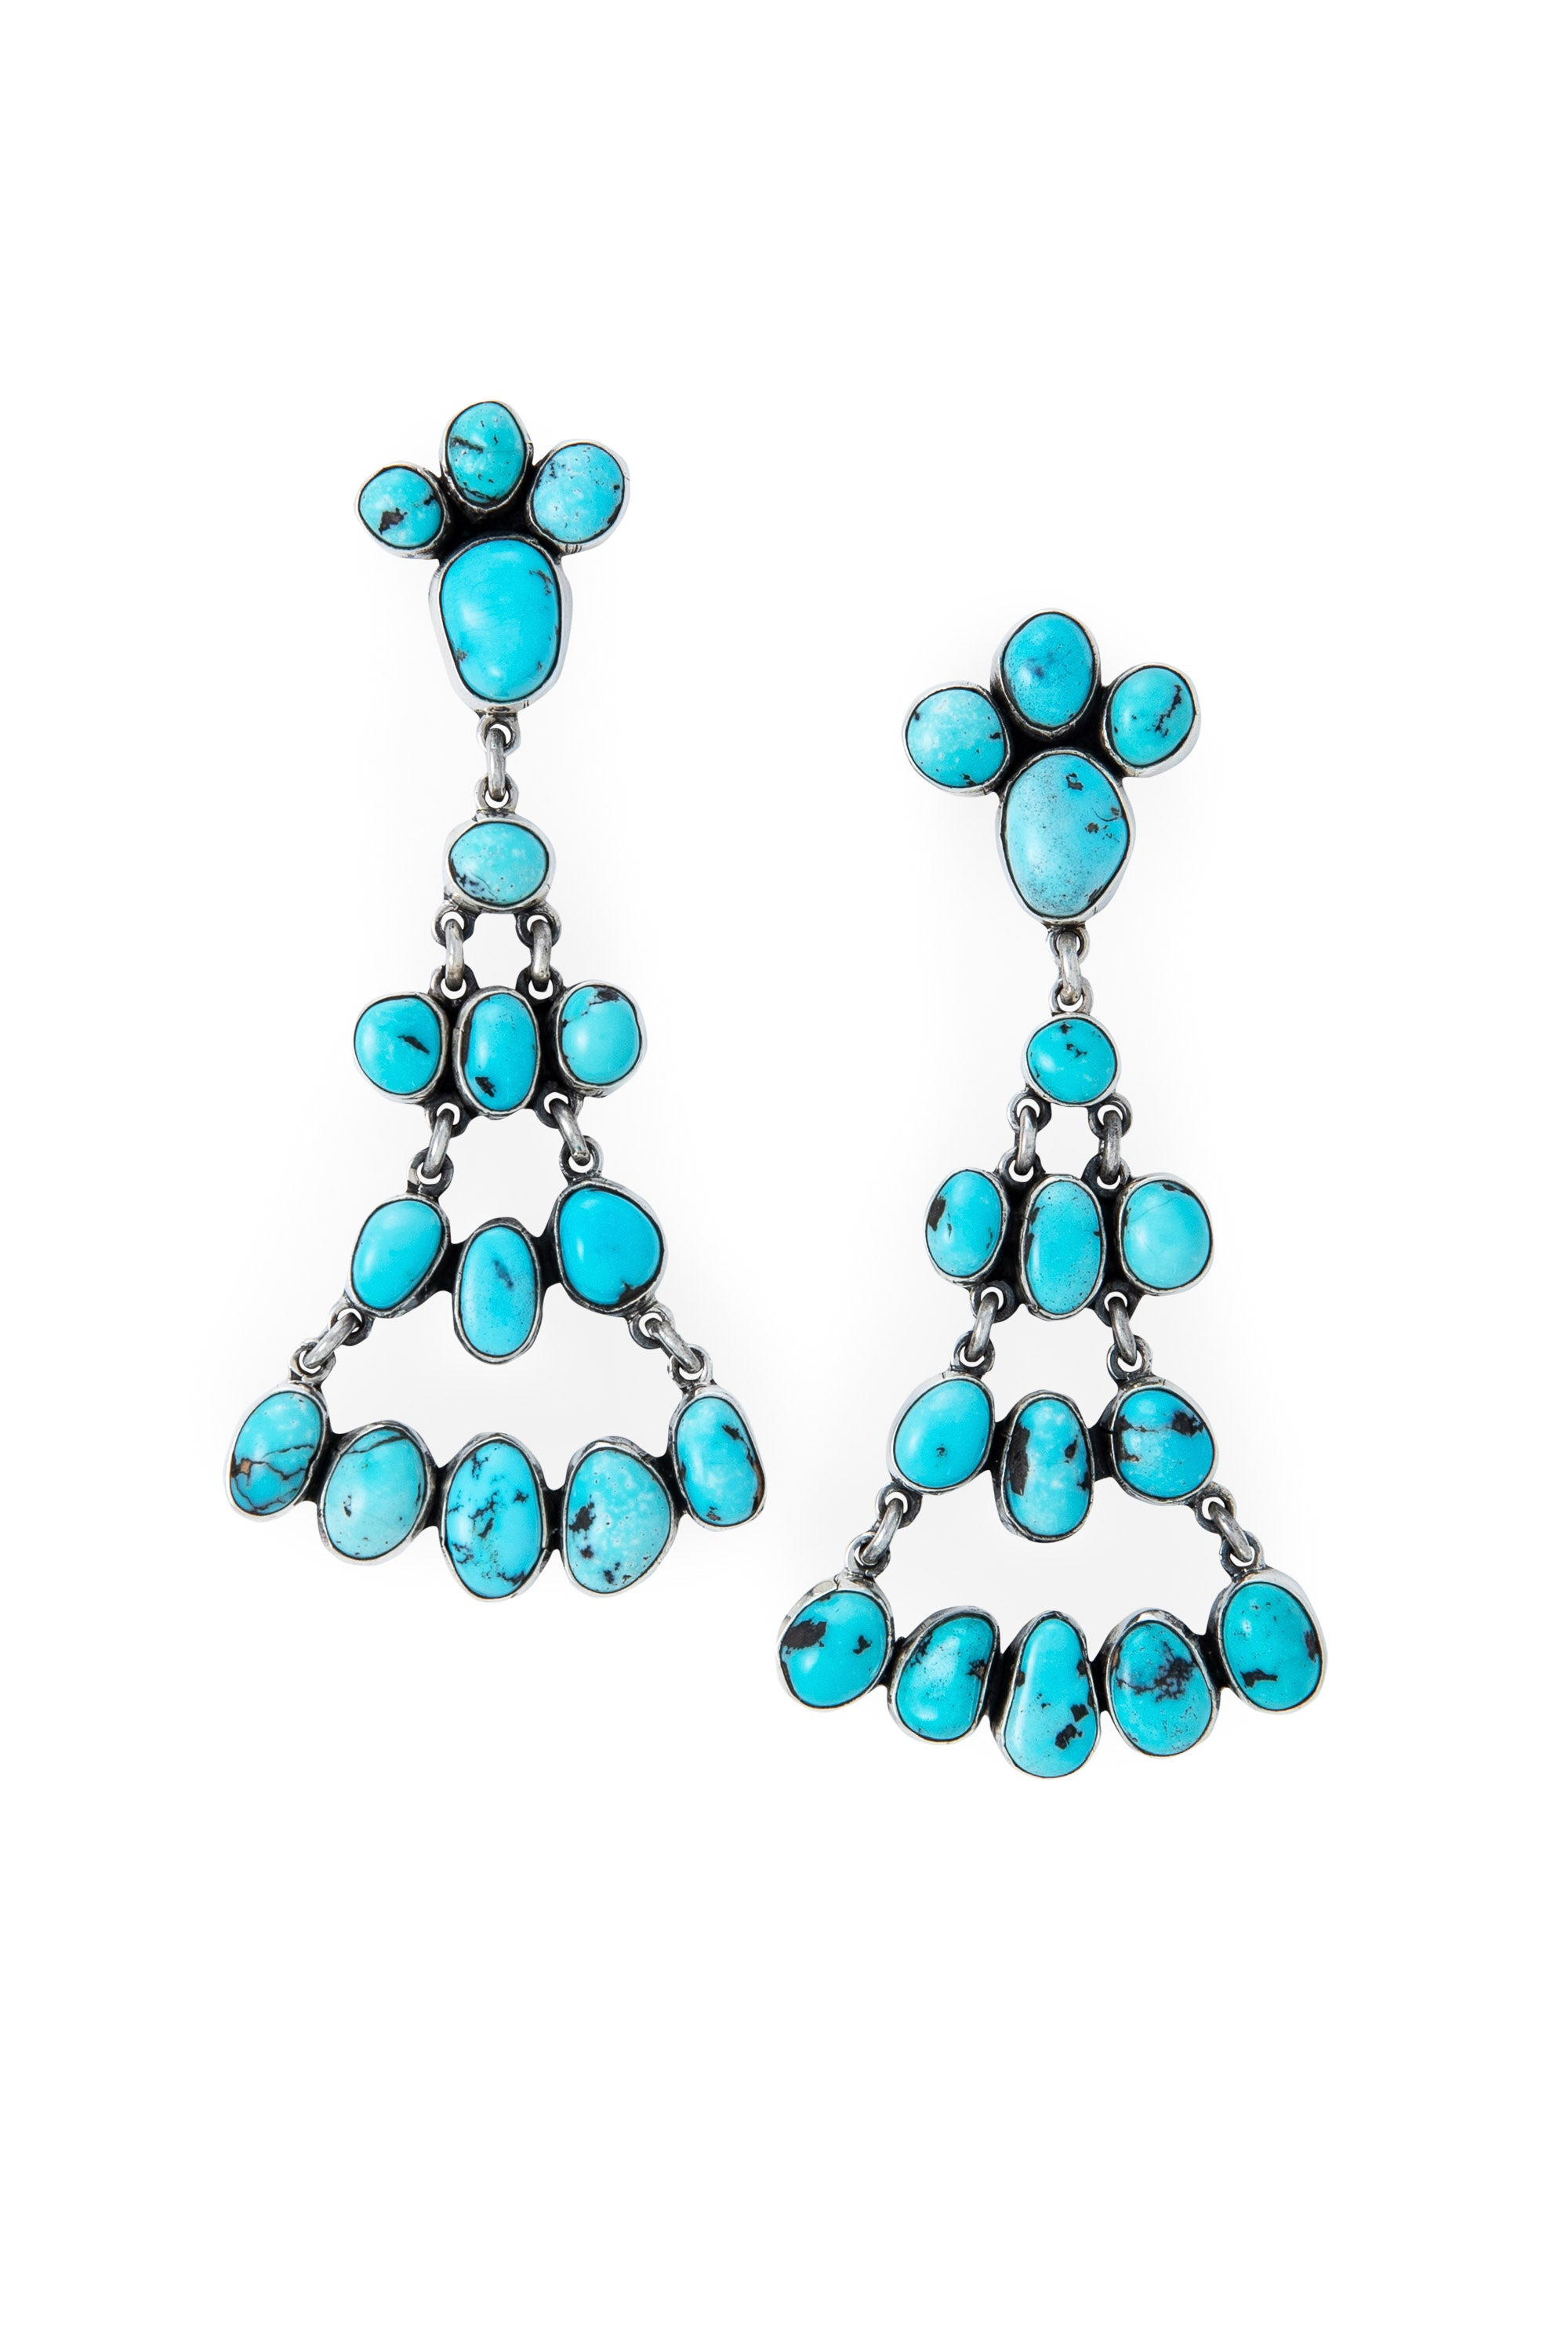 Earrings, Chandelier, Turquoise, Federico, Comtemporary,532